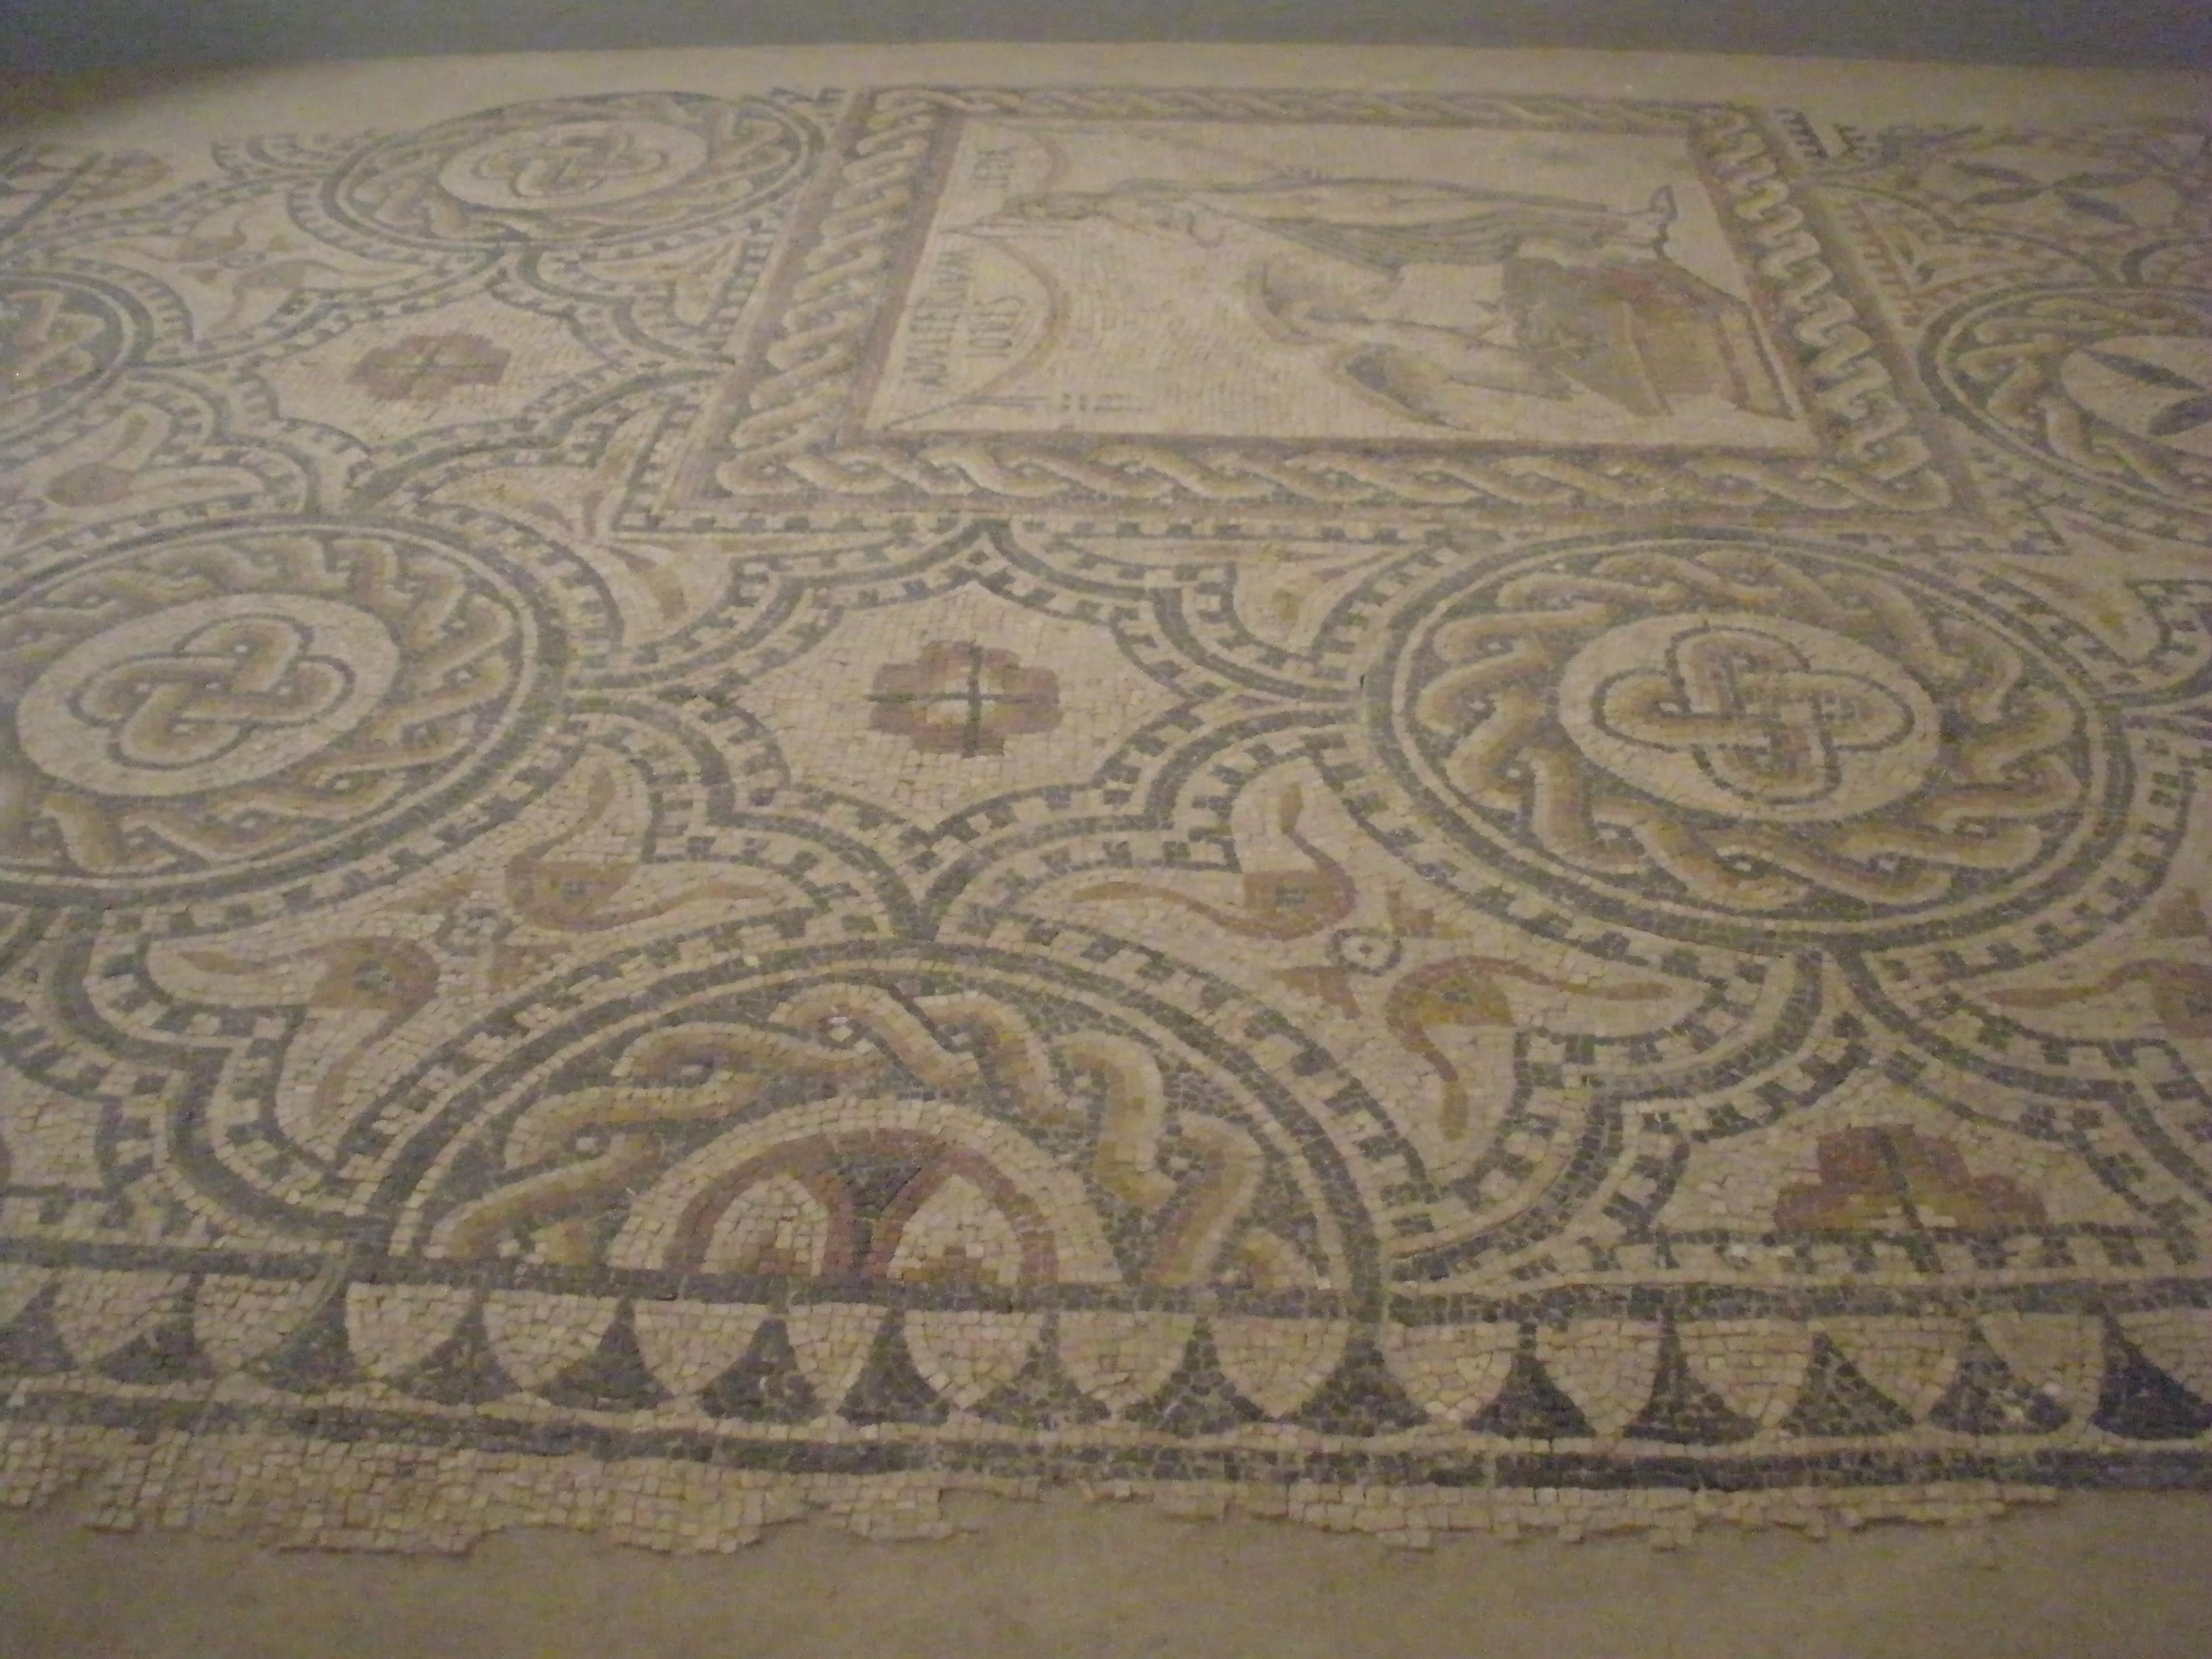 Suelo en Museo Arqueológico Regional